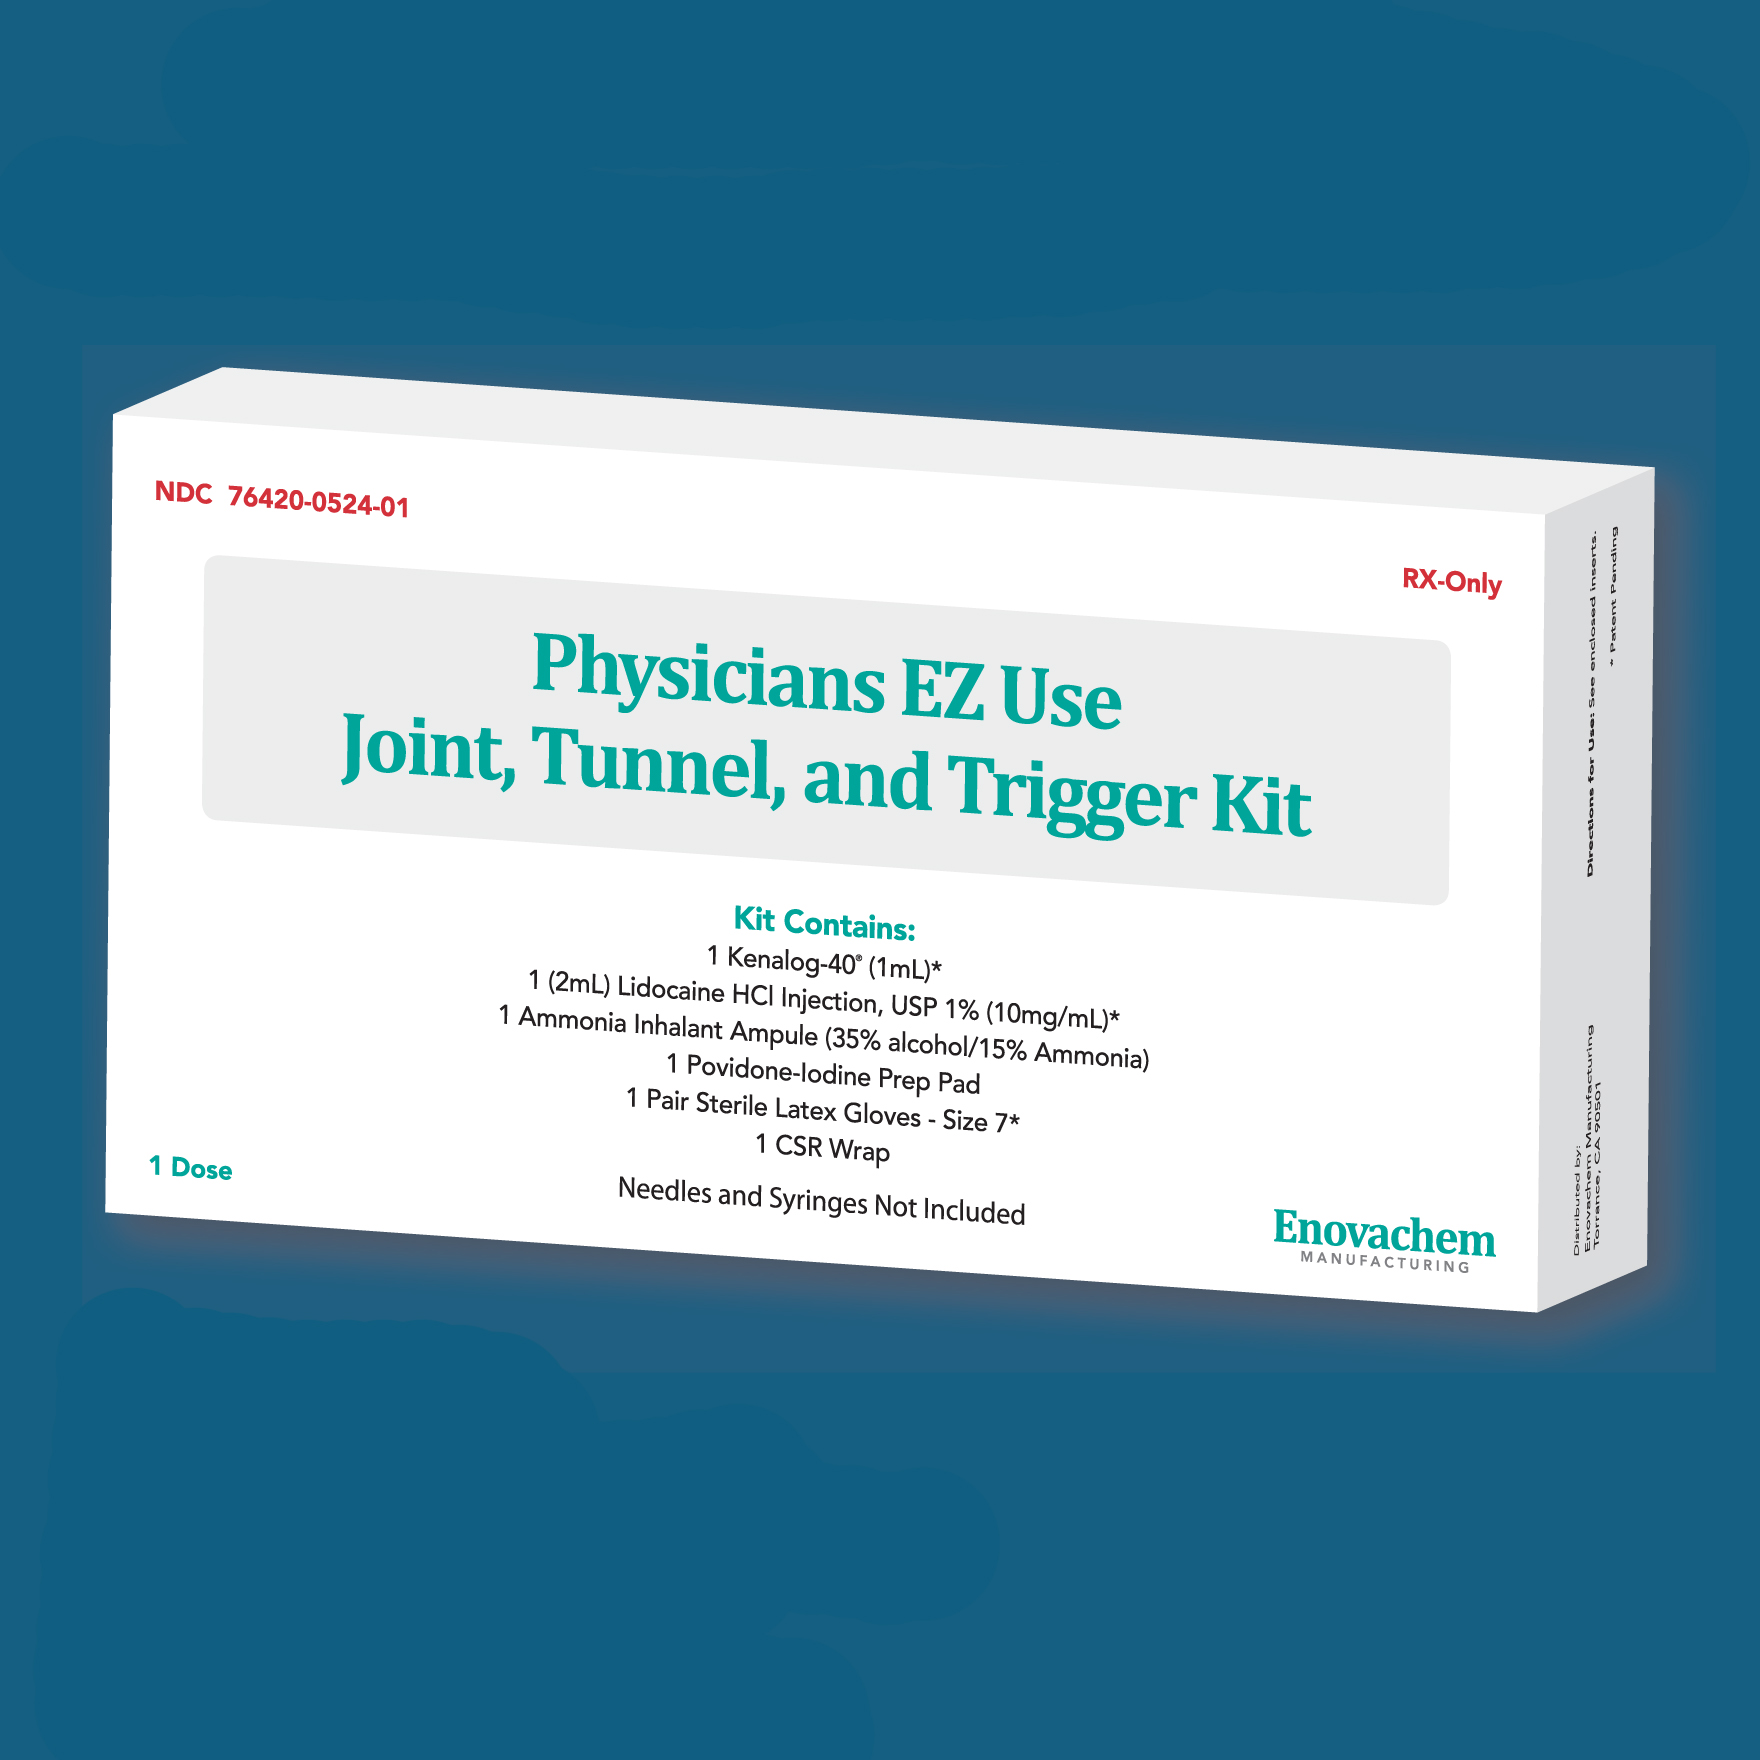 Joint, Tunnel, and Trigger Injection Kit